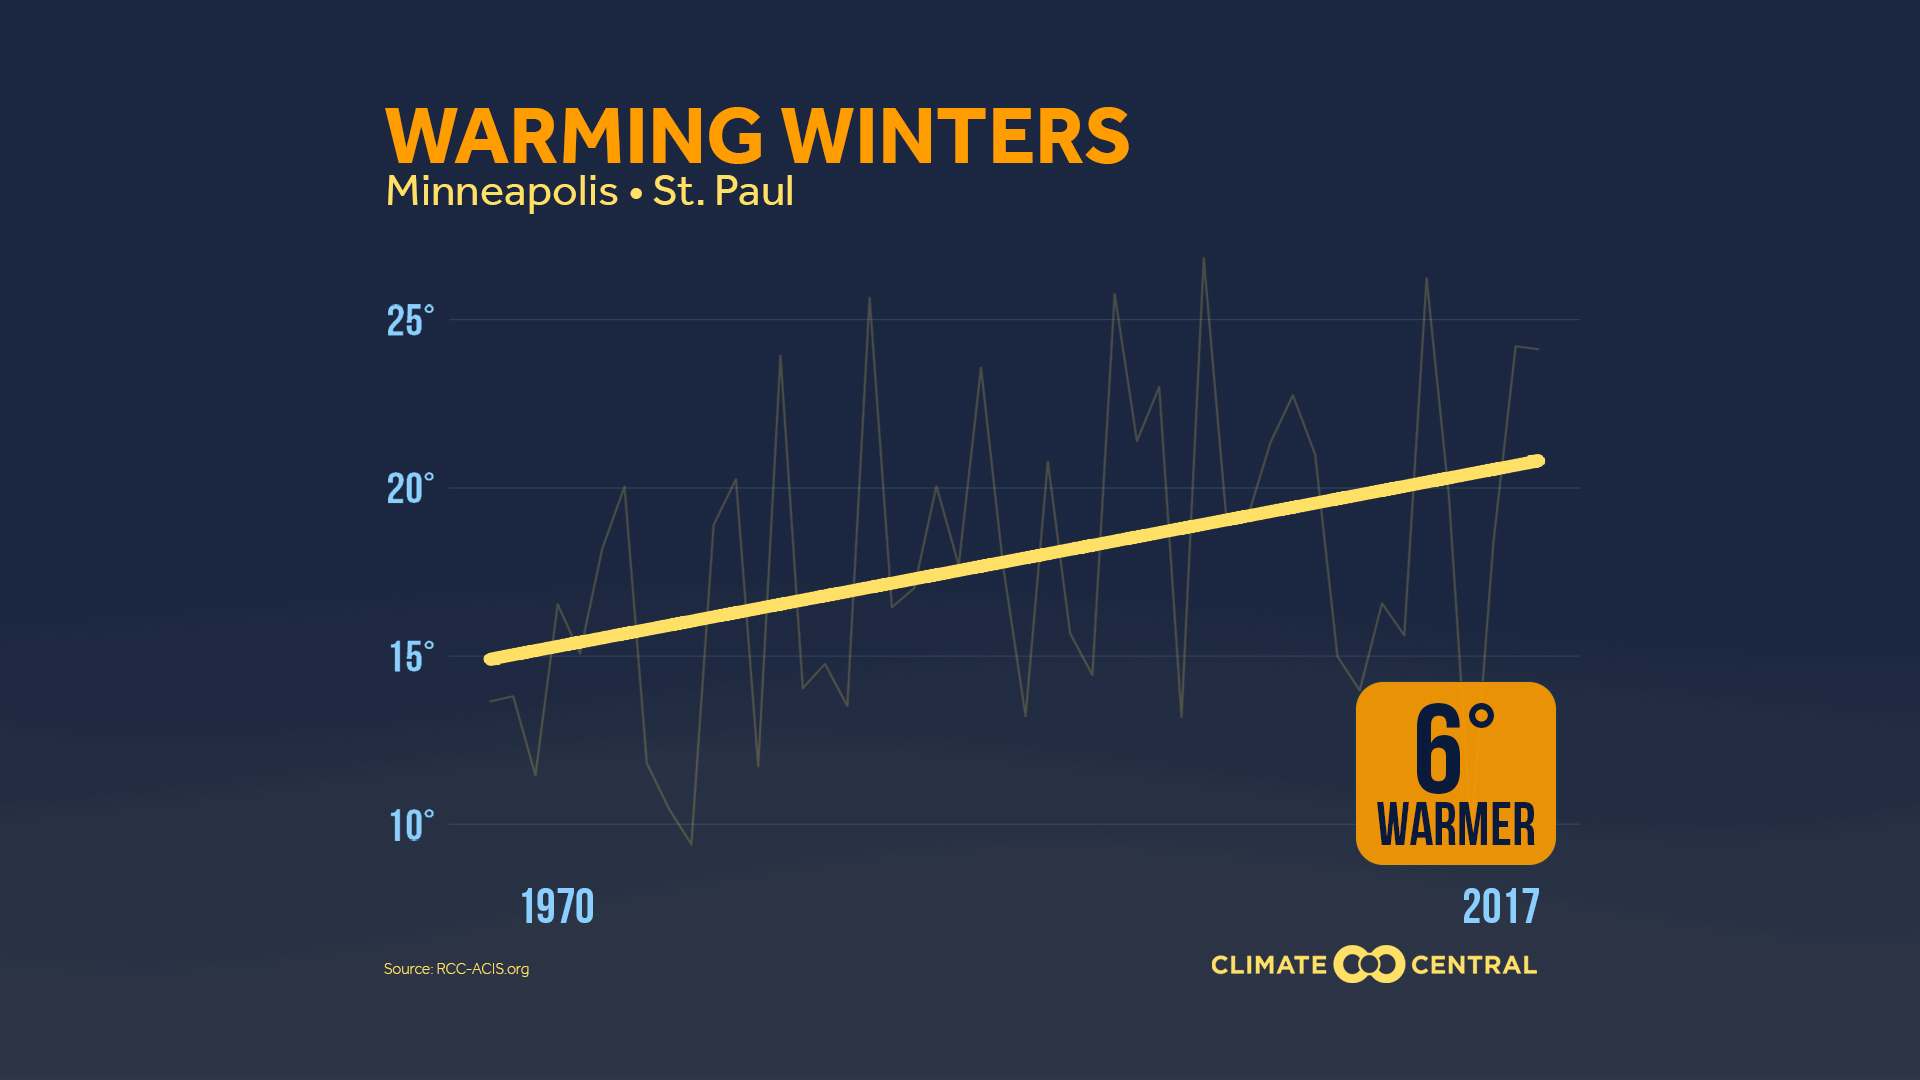 2017WarmingWinter_Temp_minneapolis_en_title_lg.jpg